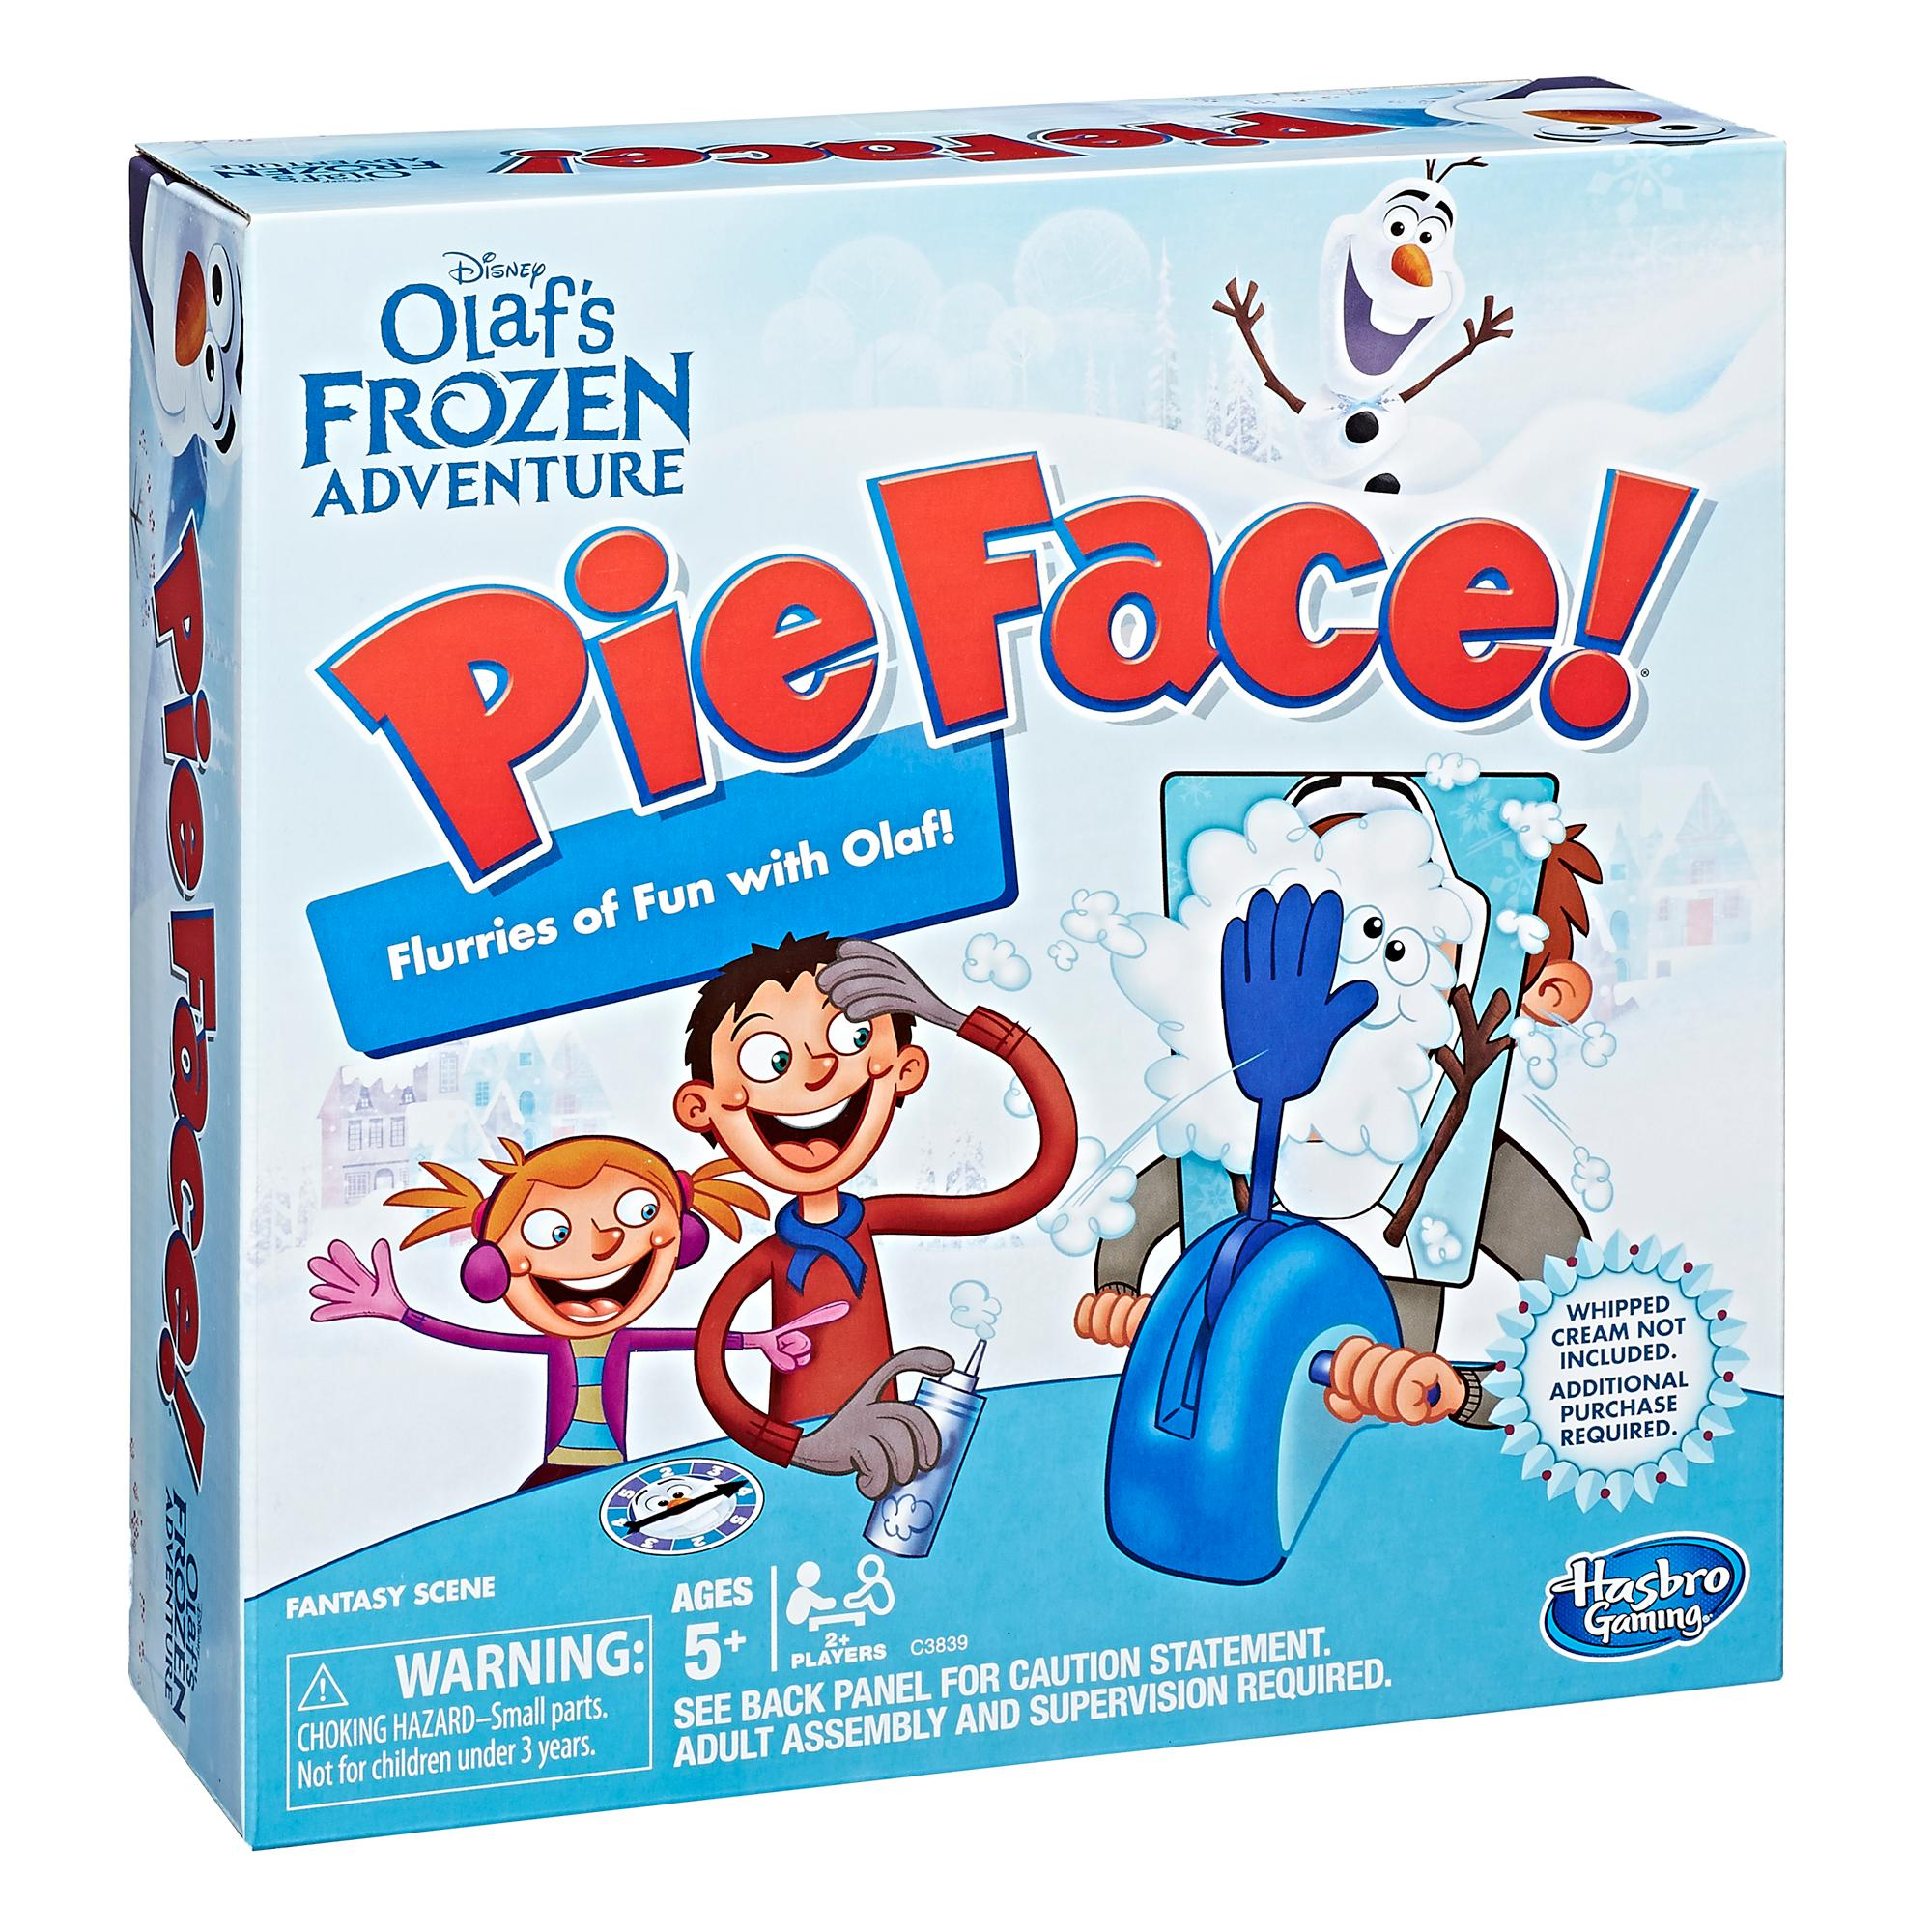 Pie Face: Disney Olaf's Frozen Edition